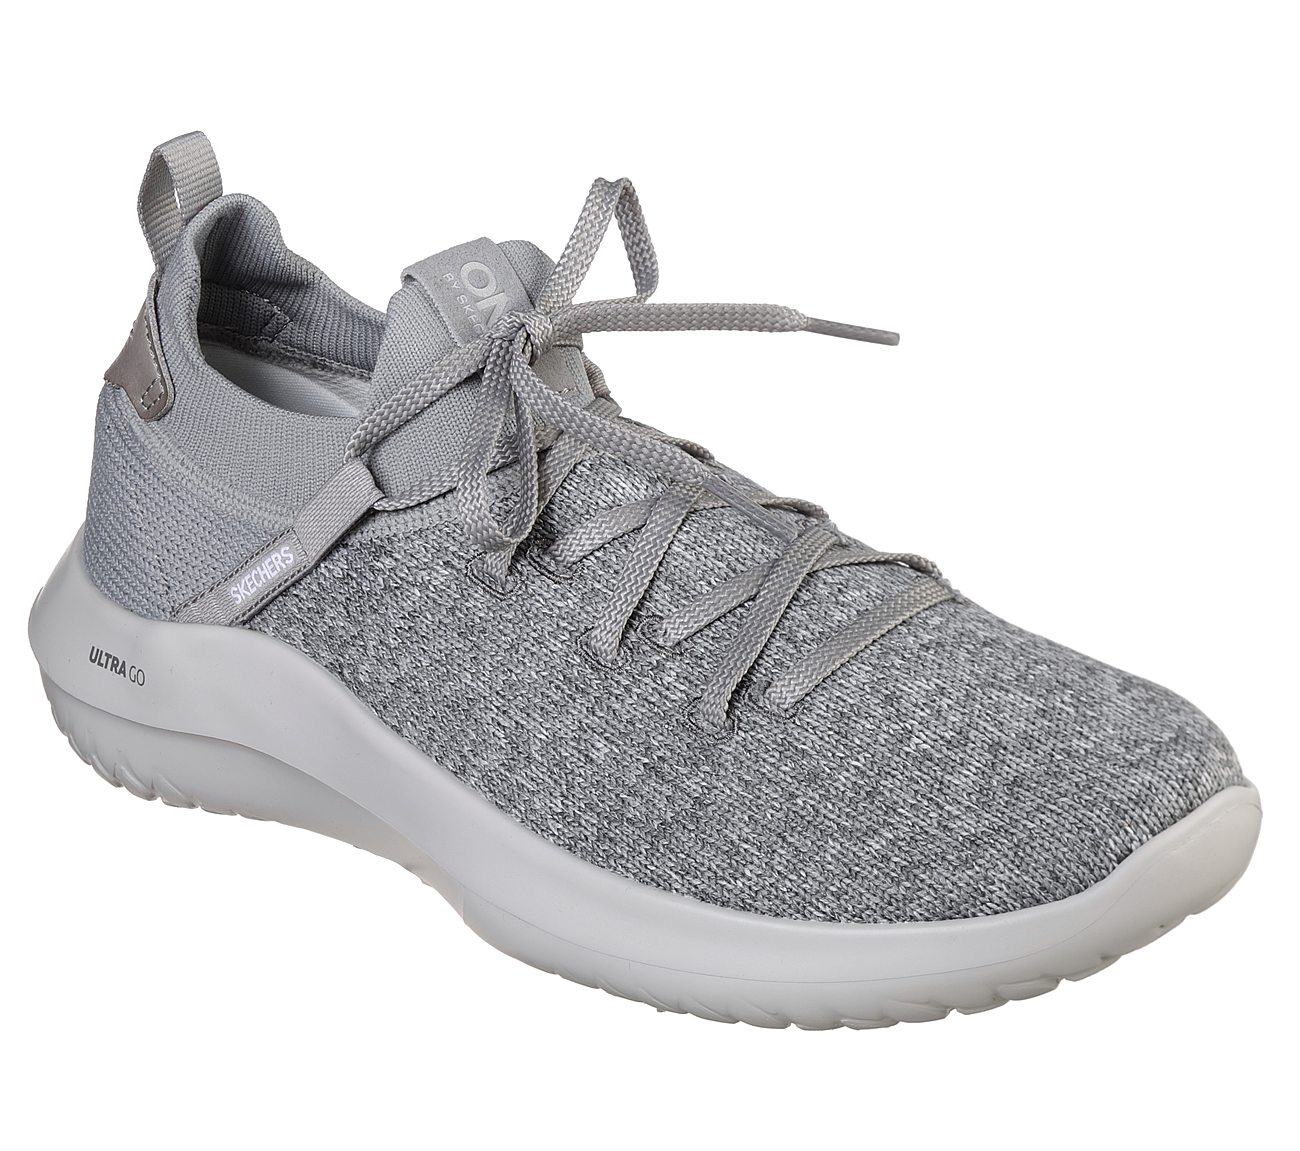 Men's Skechers ONE Downtown Ultra - Core latest sale online discount good selling recommend for sale XhCxMuHG7w